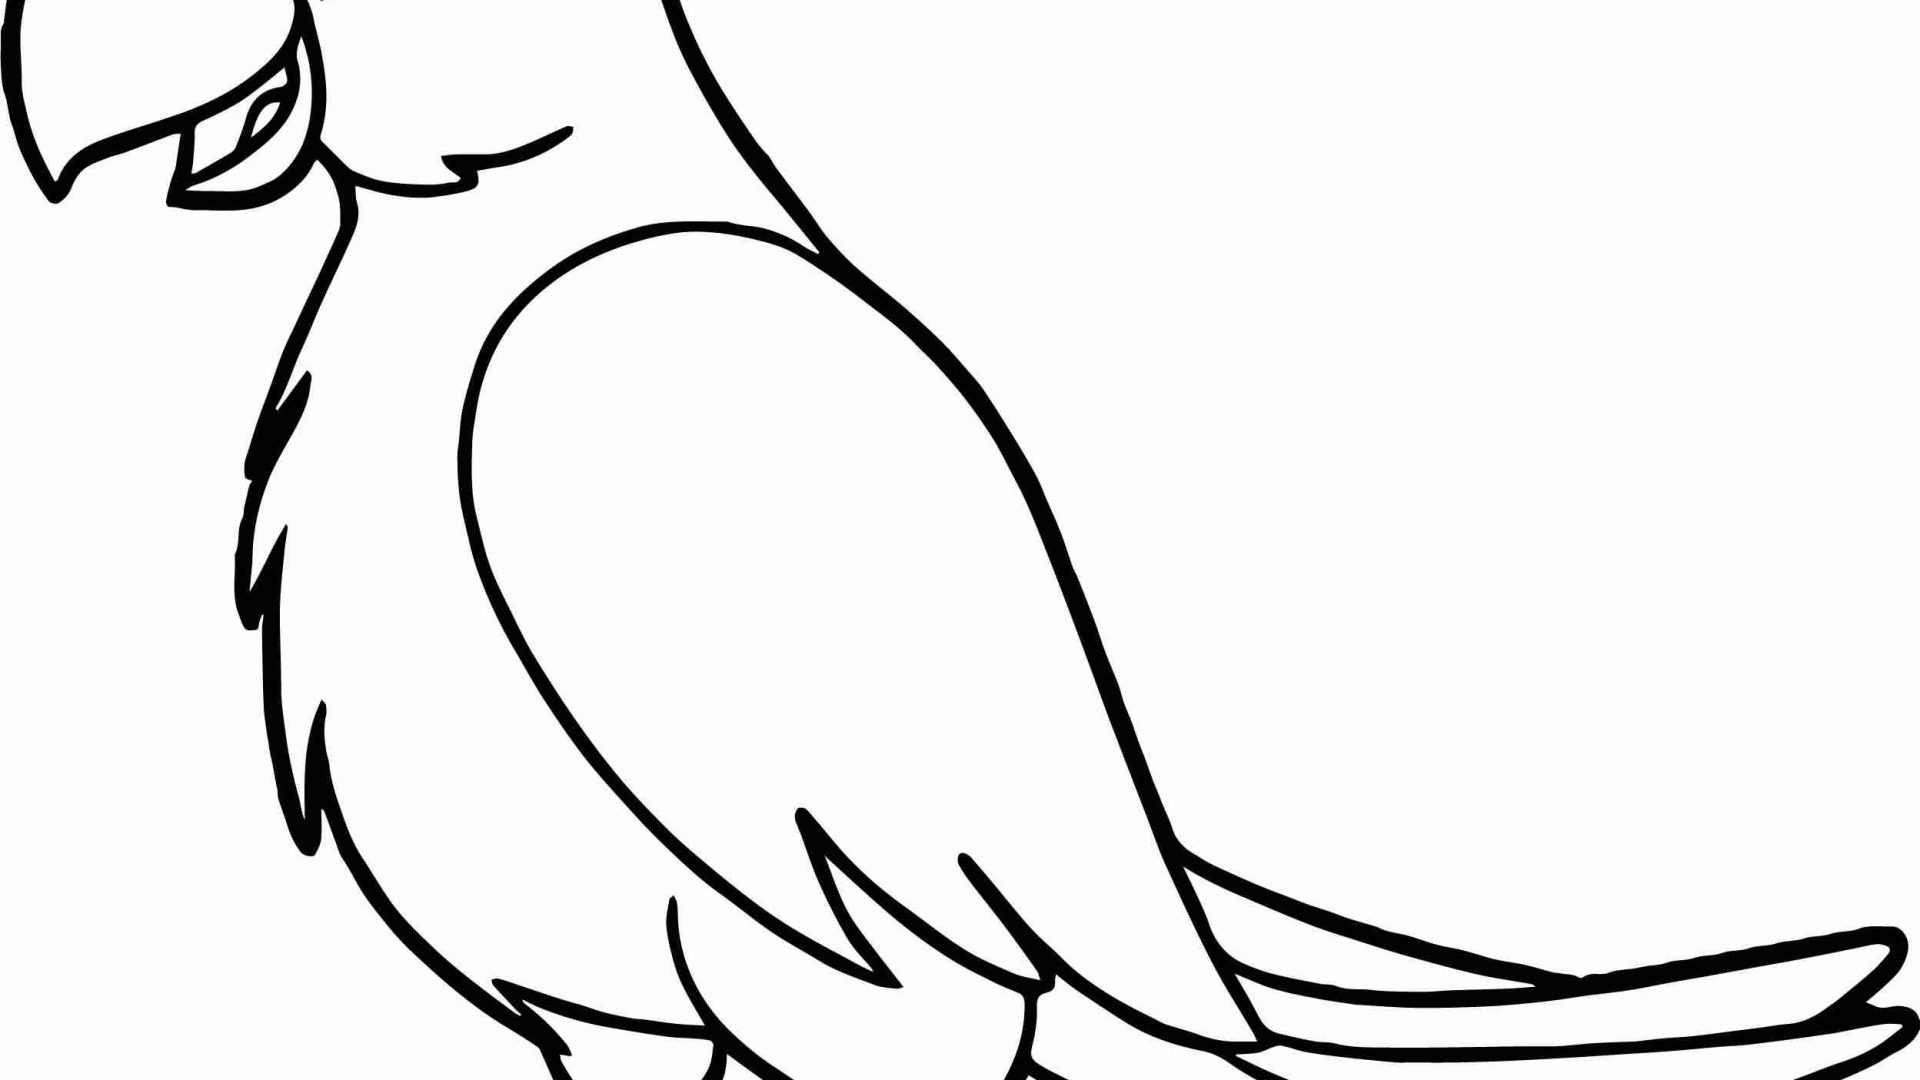 Parrot Coloring Pages Reduced Parrot Colouring Pagesird Coloring Page With Free For